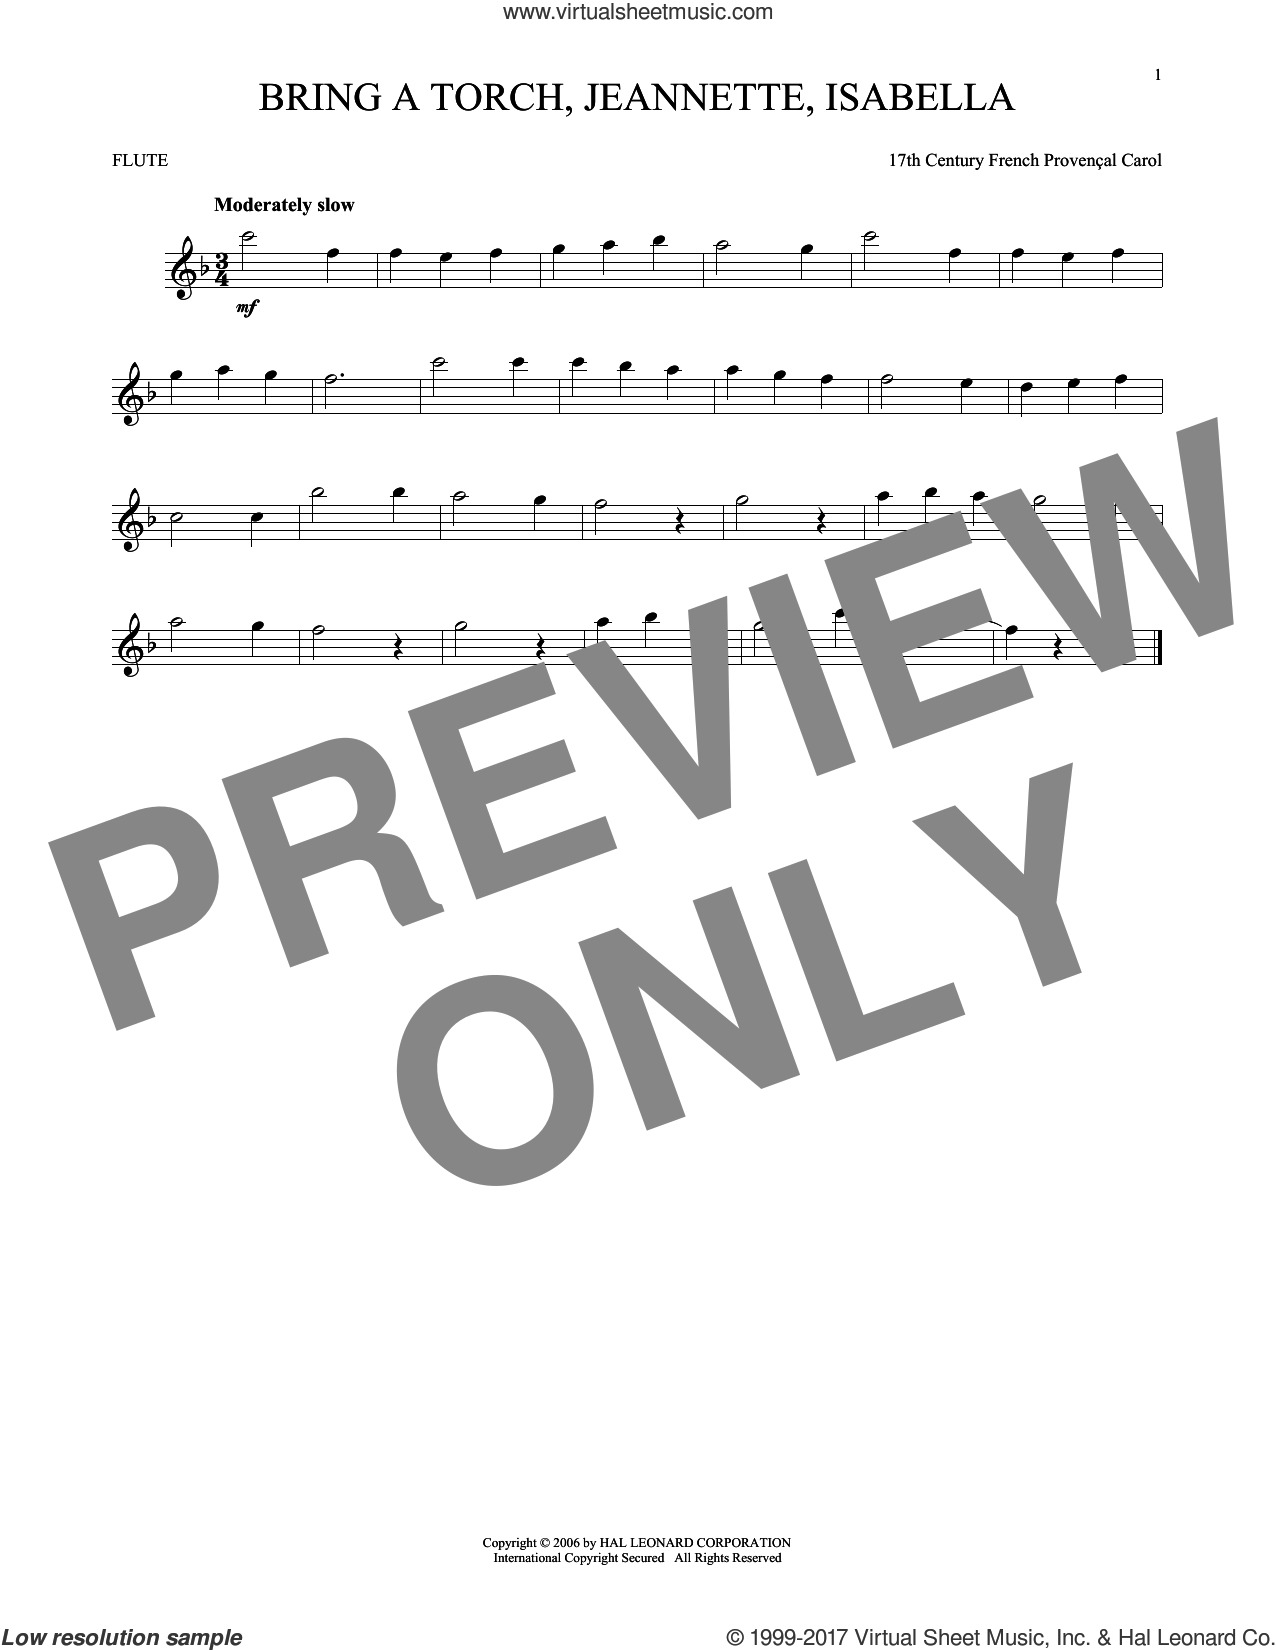 Bring A Torch, Jeannette, Isabella sheet music for flute solo by Anonymous and Miscellaneous. Score Image Preview.